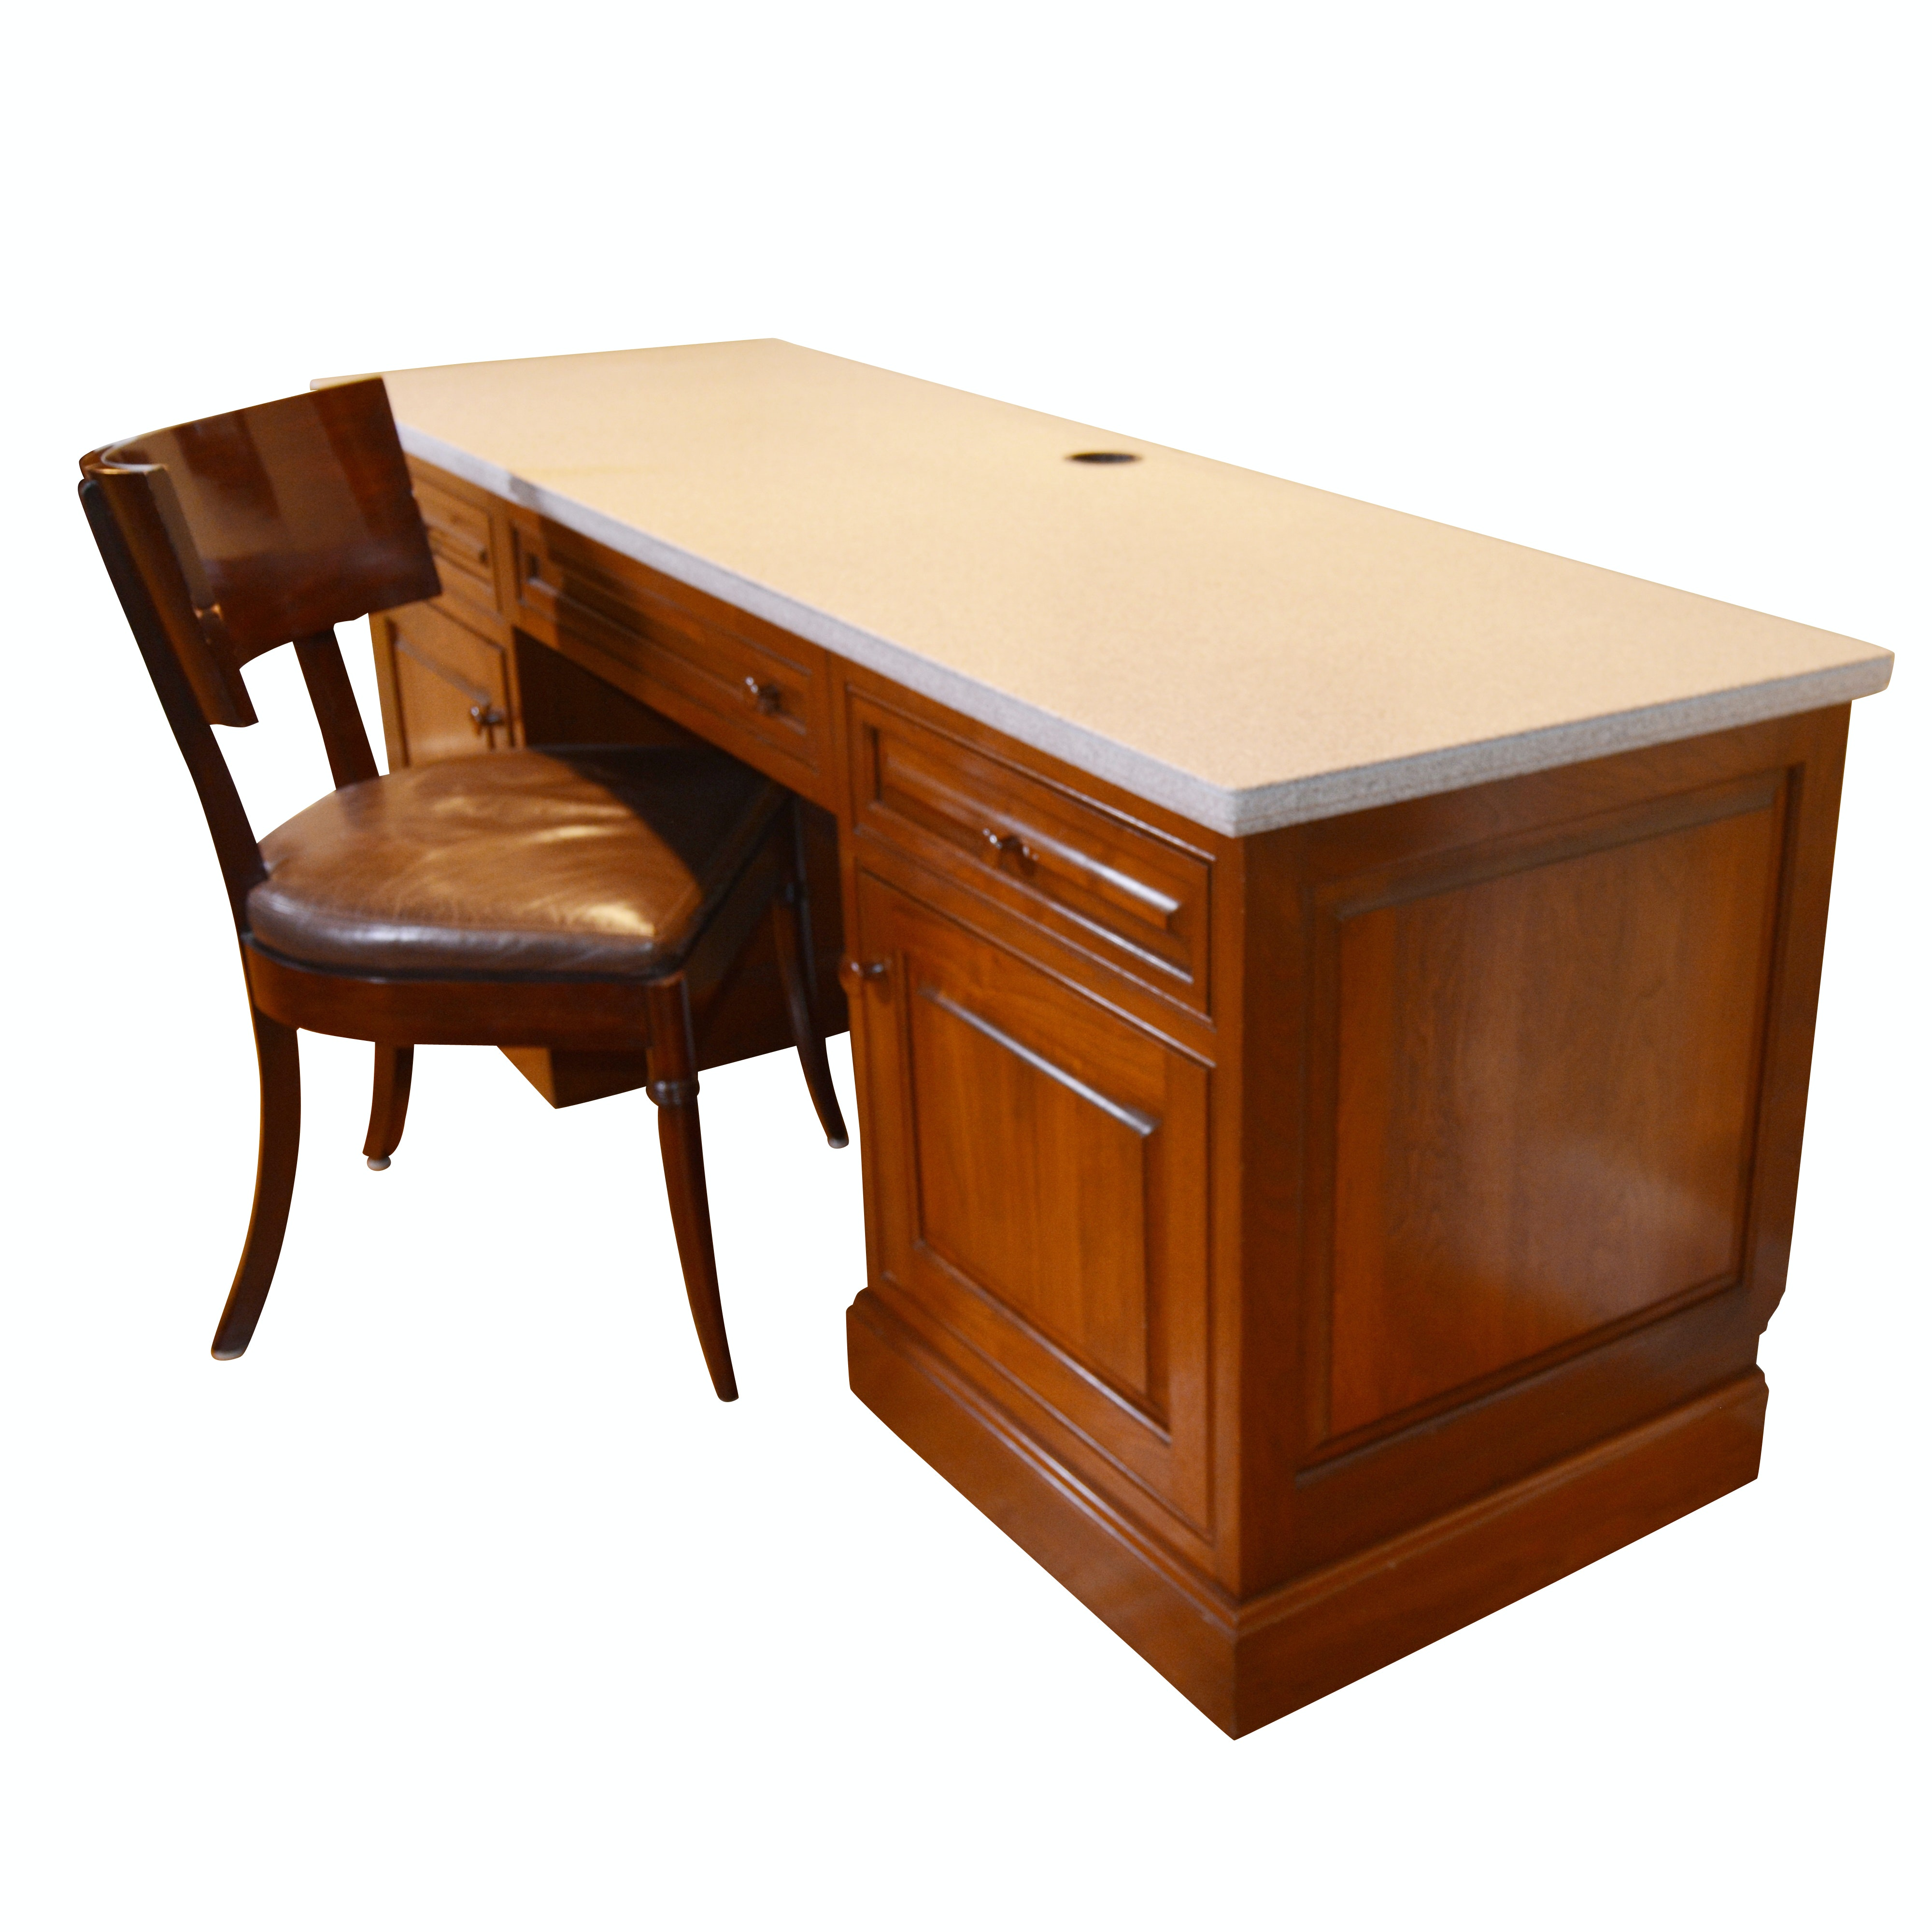 Contemporary Executive Desk and Leather Seat Chair by Williams Sonoma